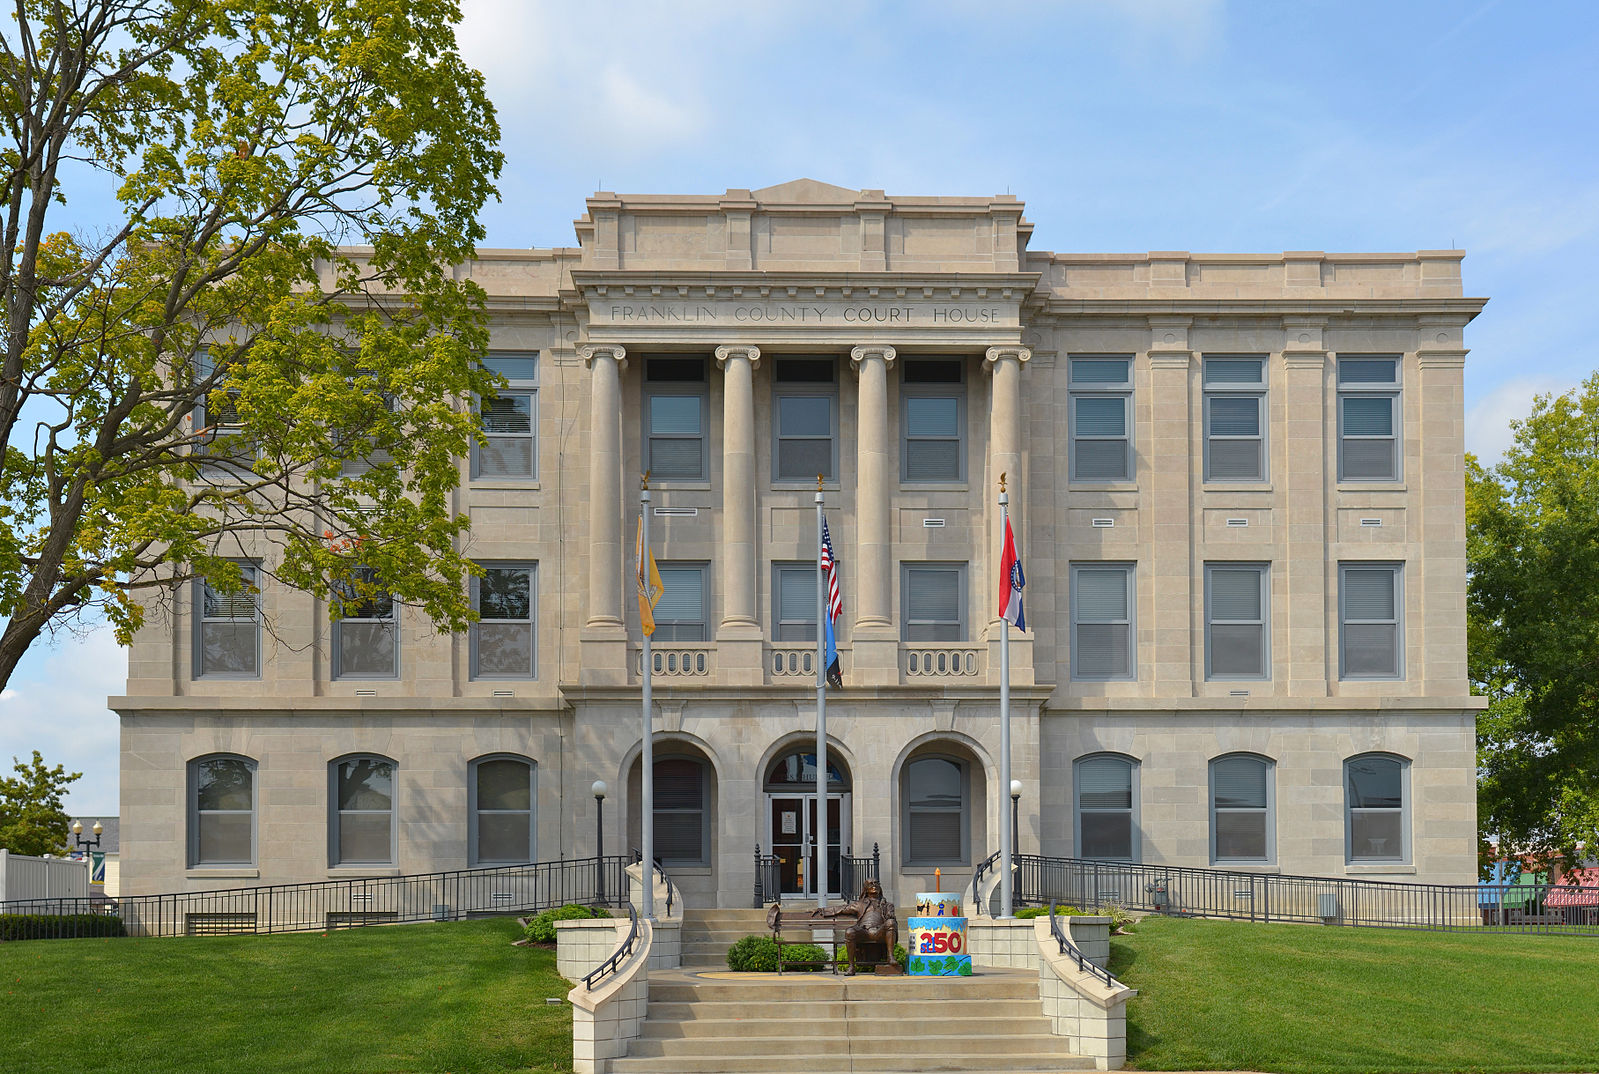 Franklin_County_MO_Courthouse_20140920_pano1